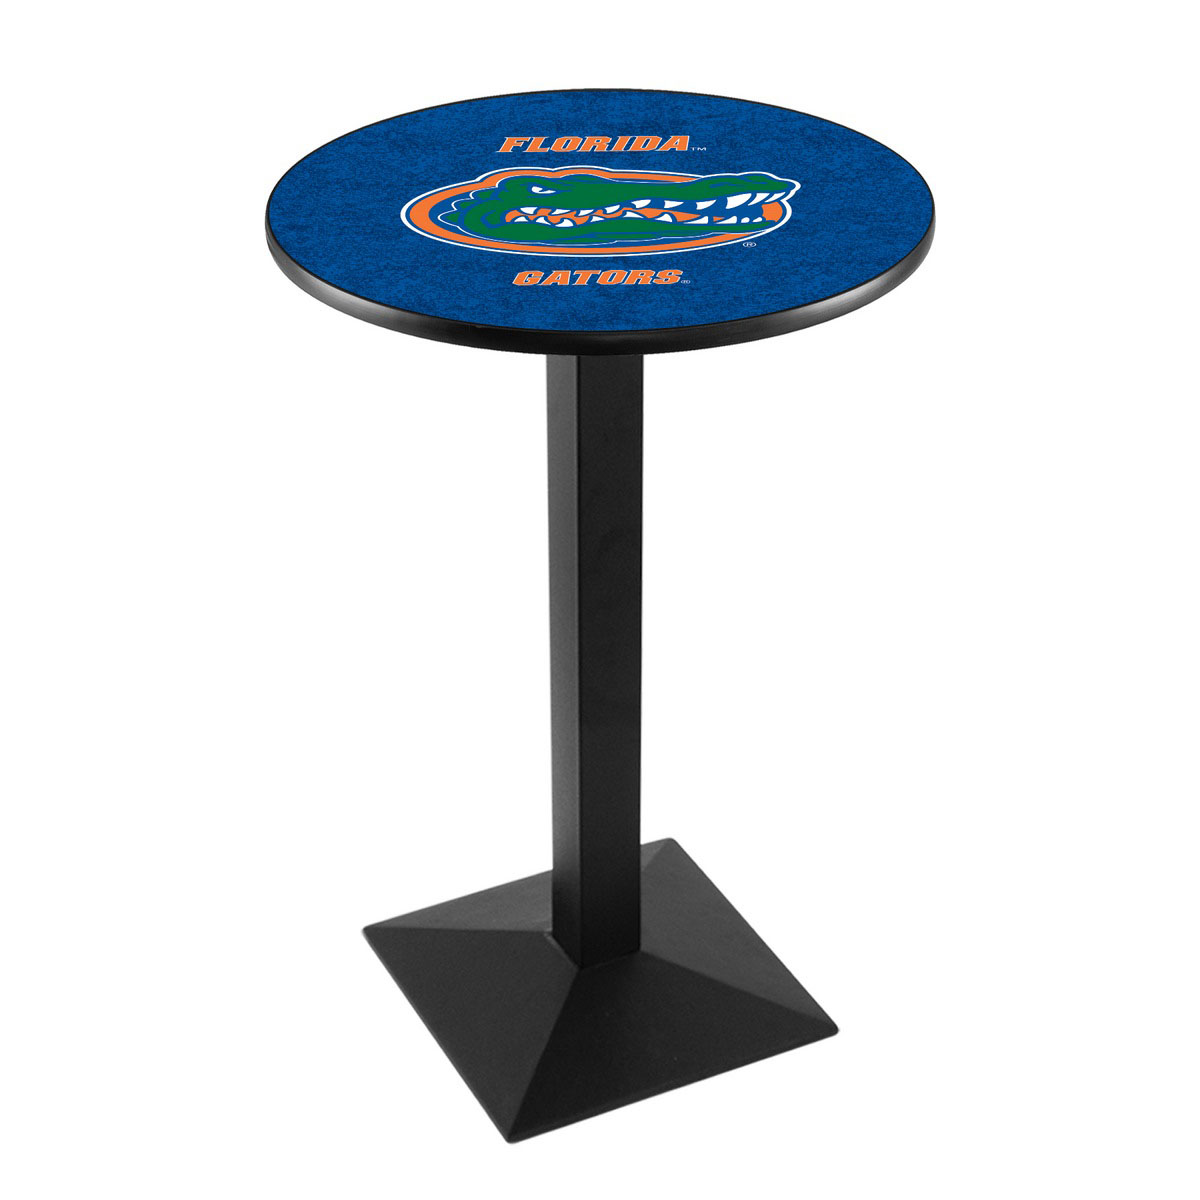 Special University Florida Logo Pub Bar Table Square Stand Product Photo